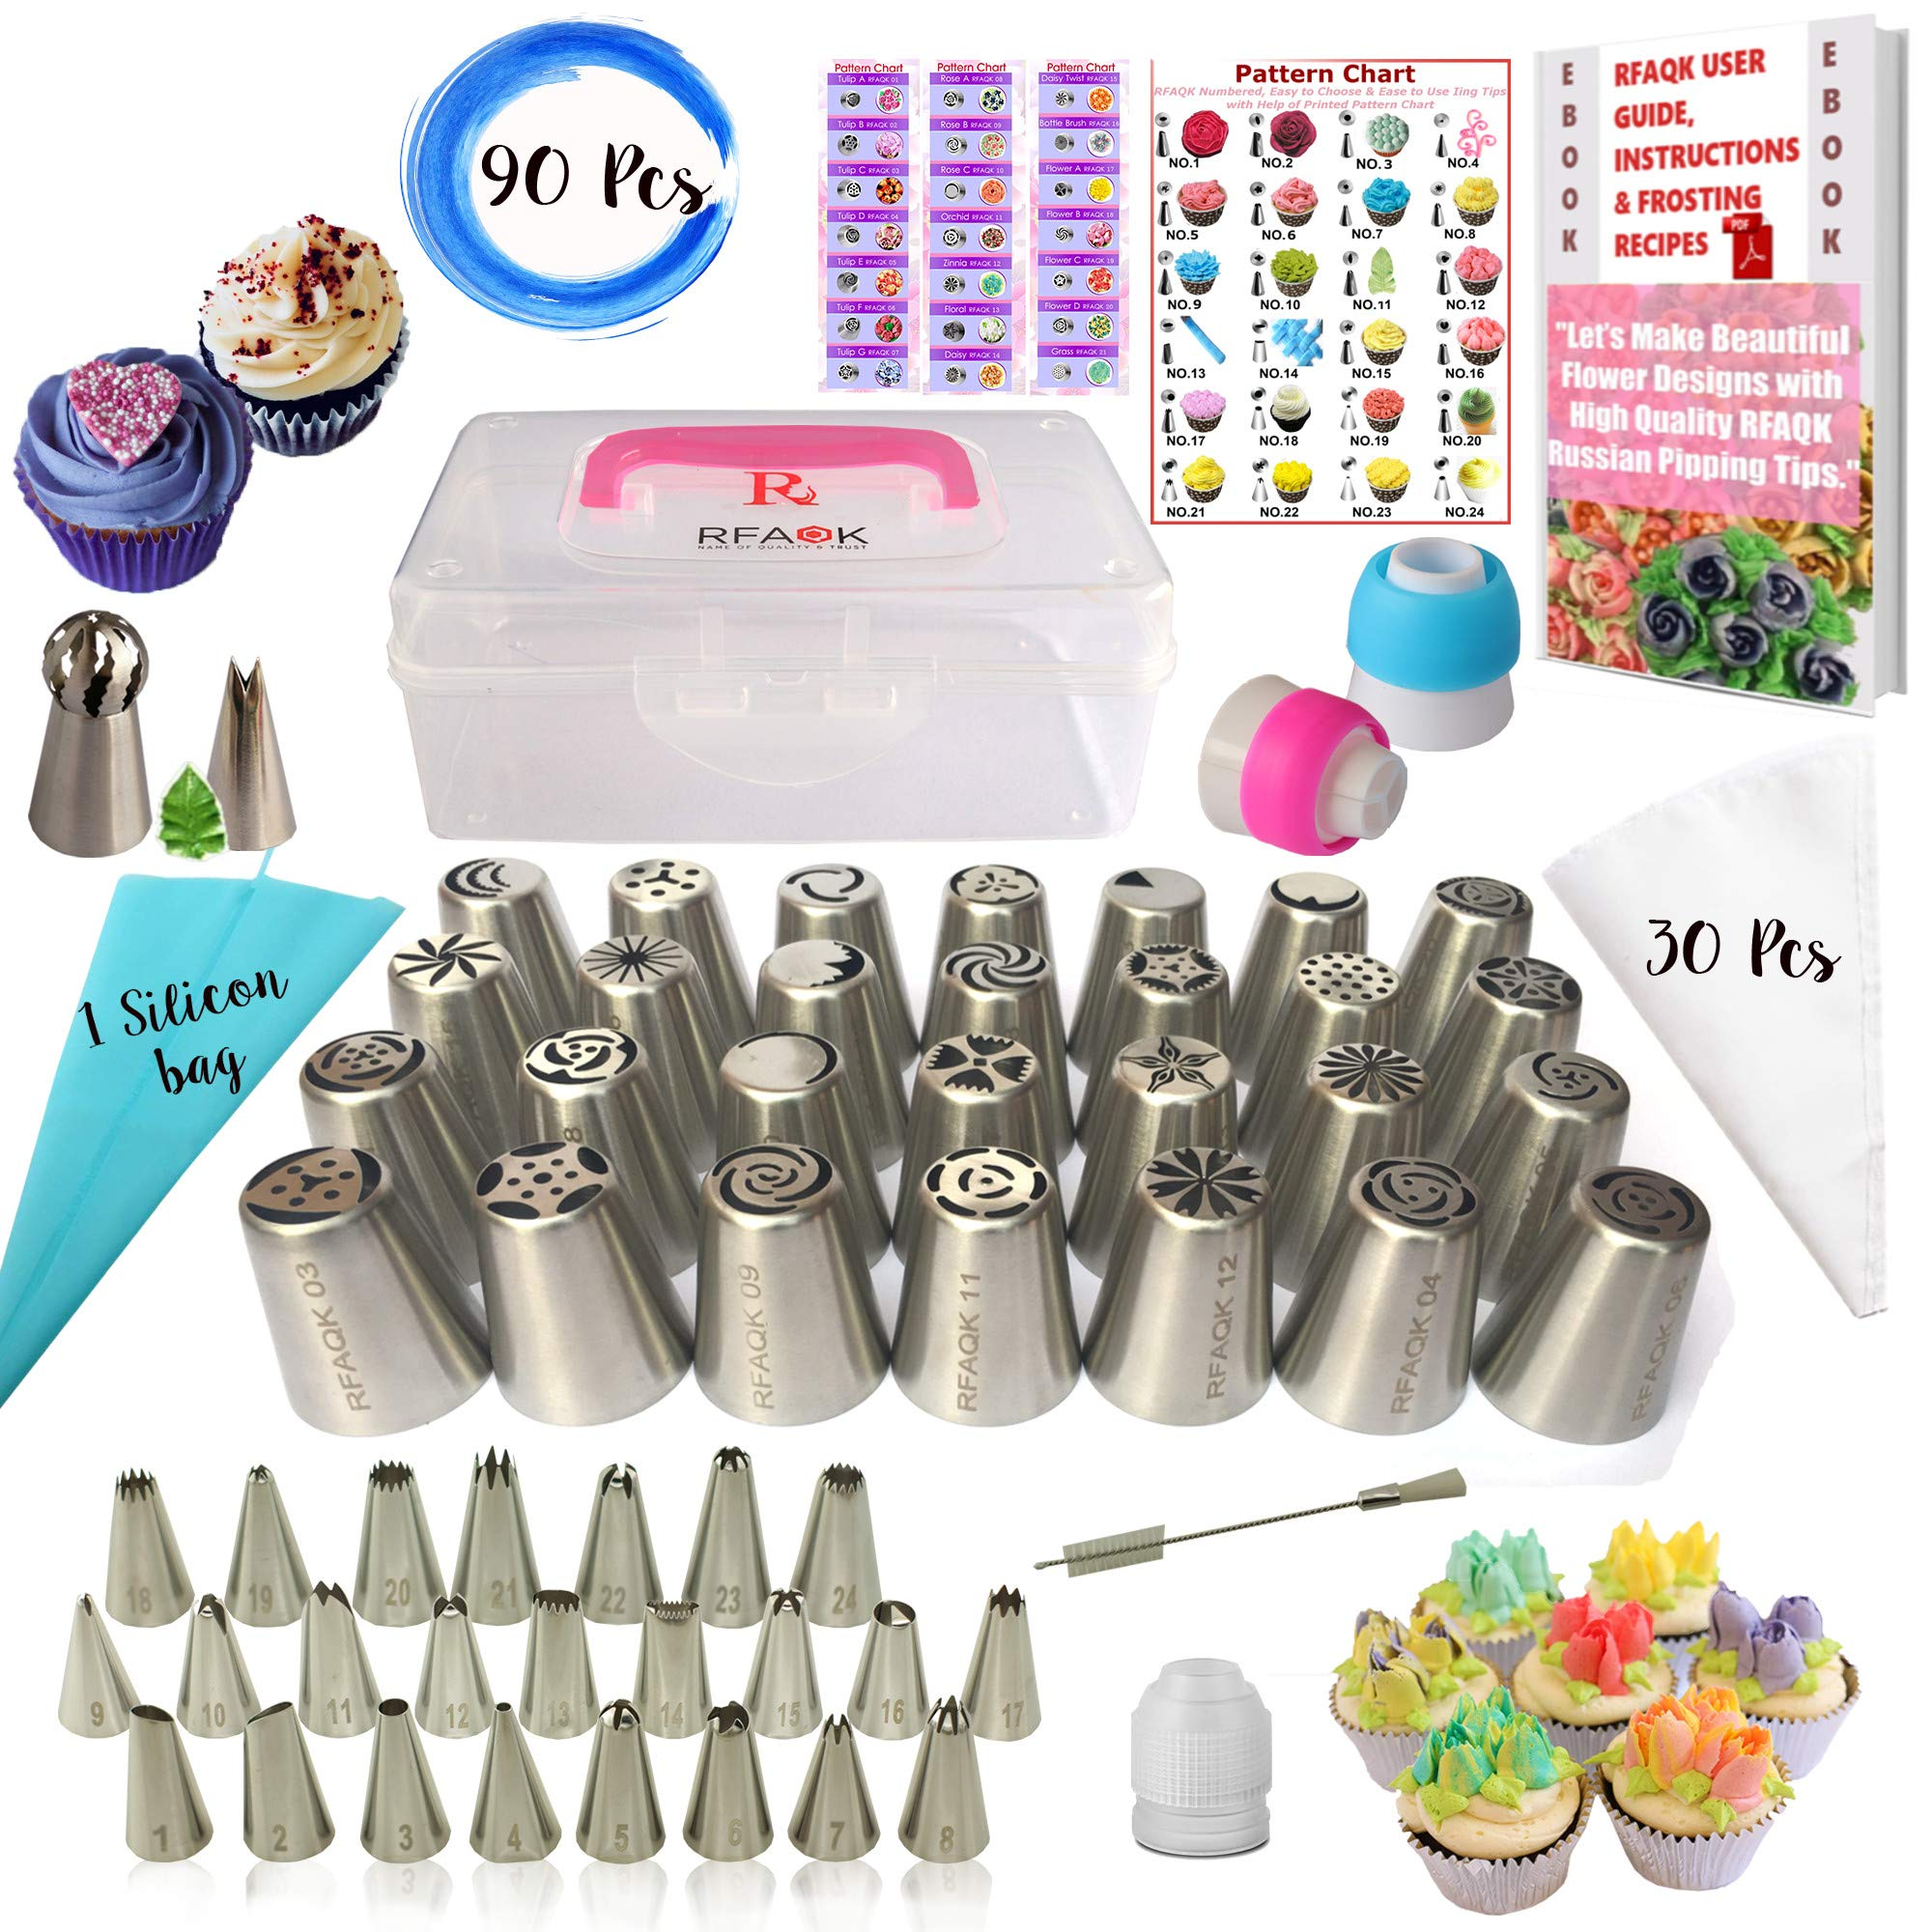 RFAQK- 90 Pcs Russian piping tips set with storage case - Cake decorating supplies kit - 54 Numbered easy to use icing nozzles (28 Russian + 25 Icing + 1 Ball tip) - Pattern chart, Ebook User Guide by RFAQK